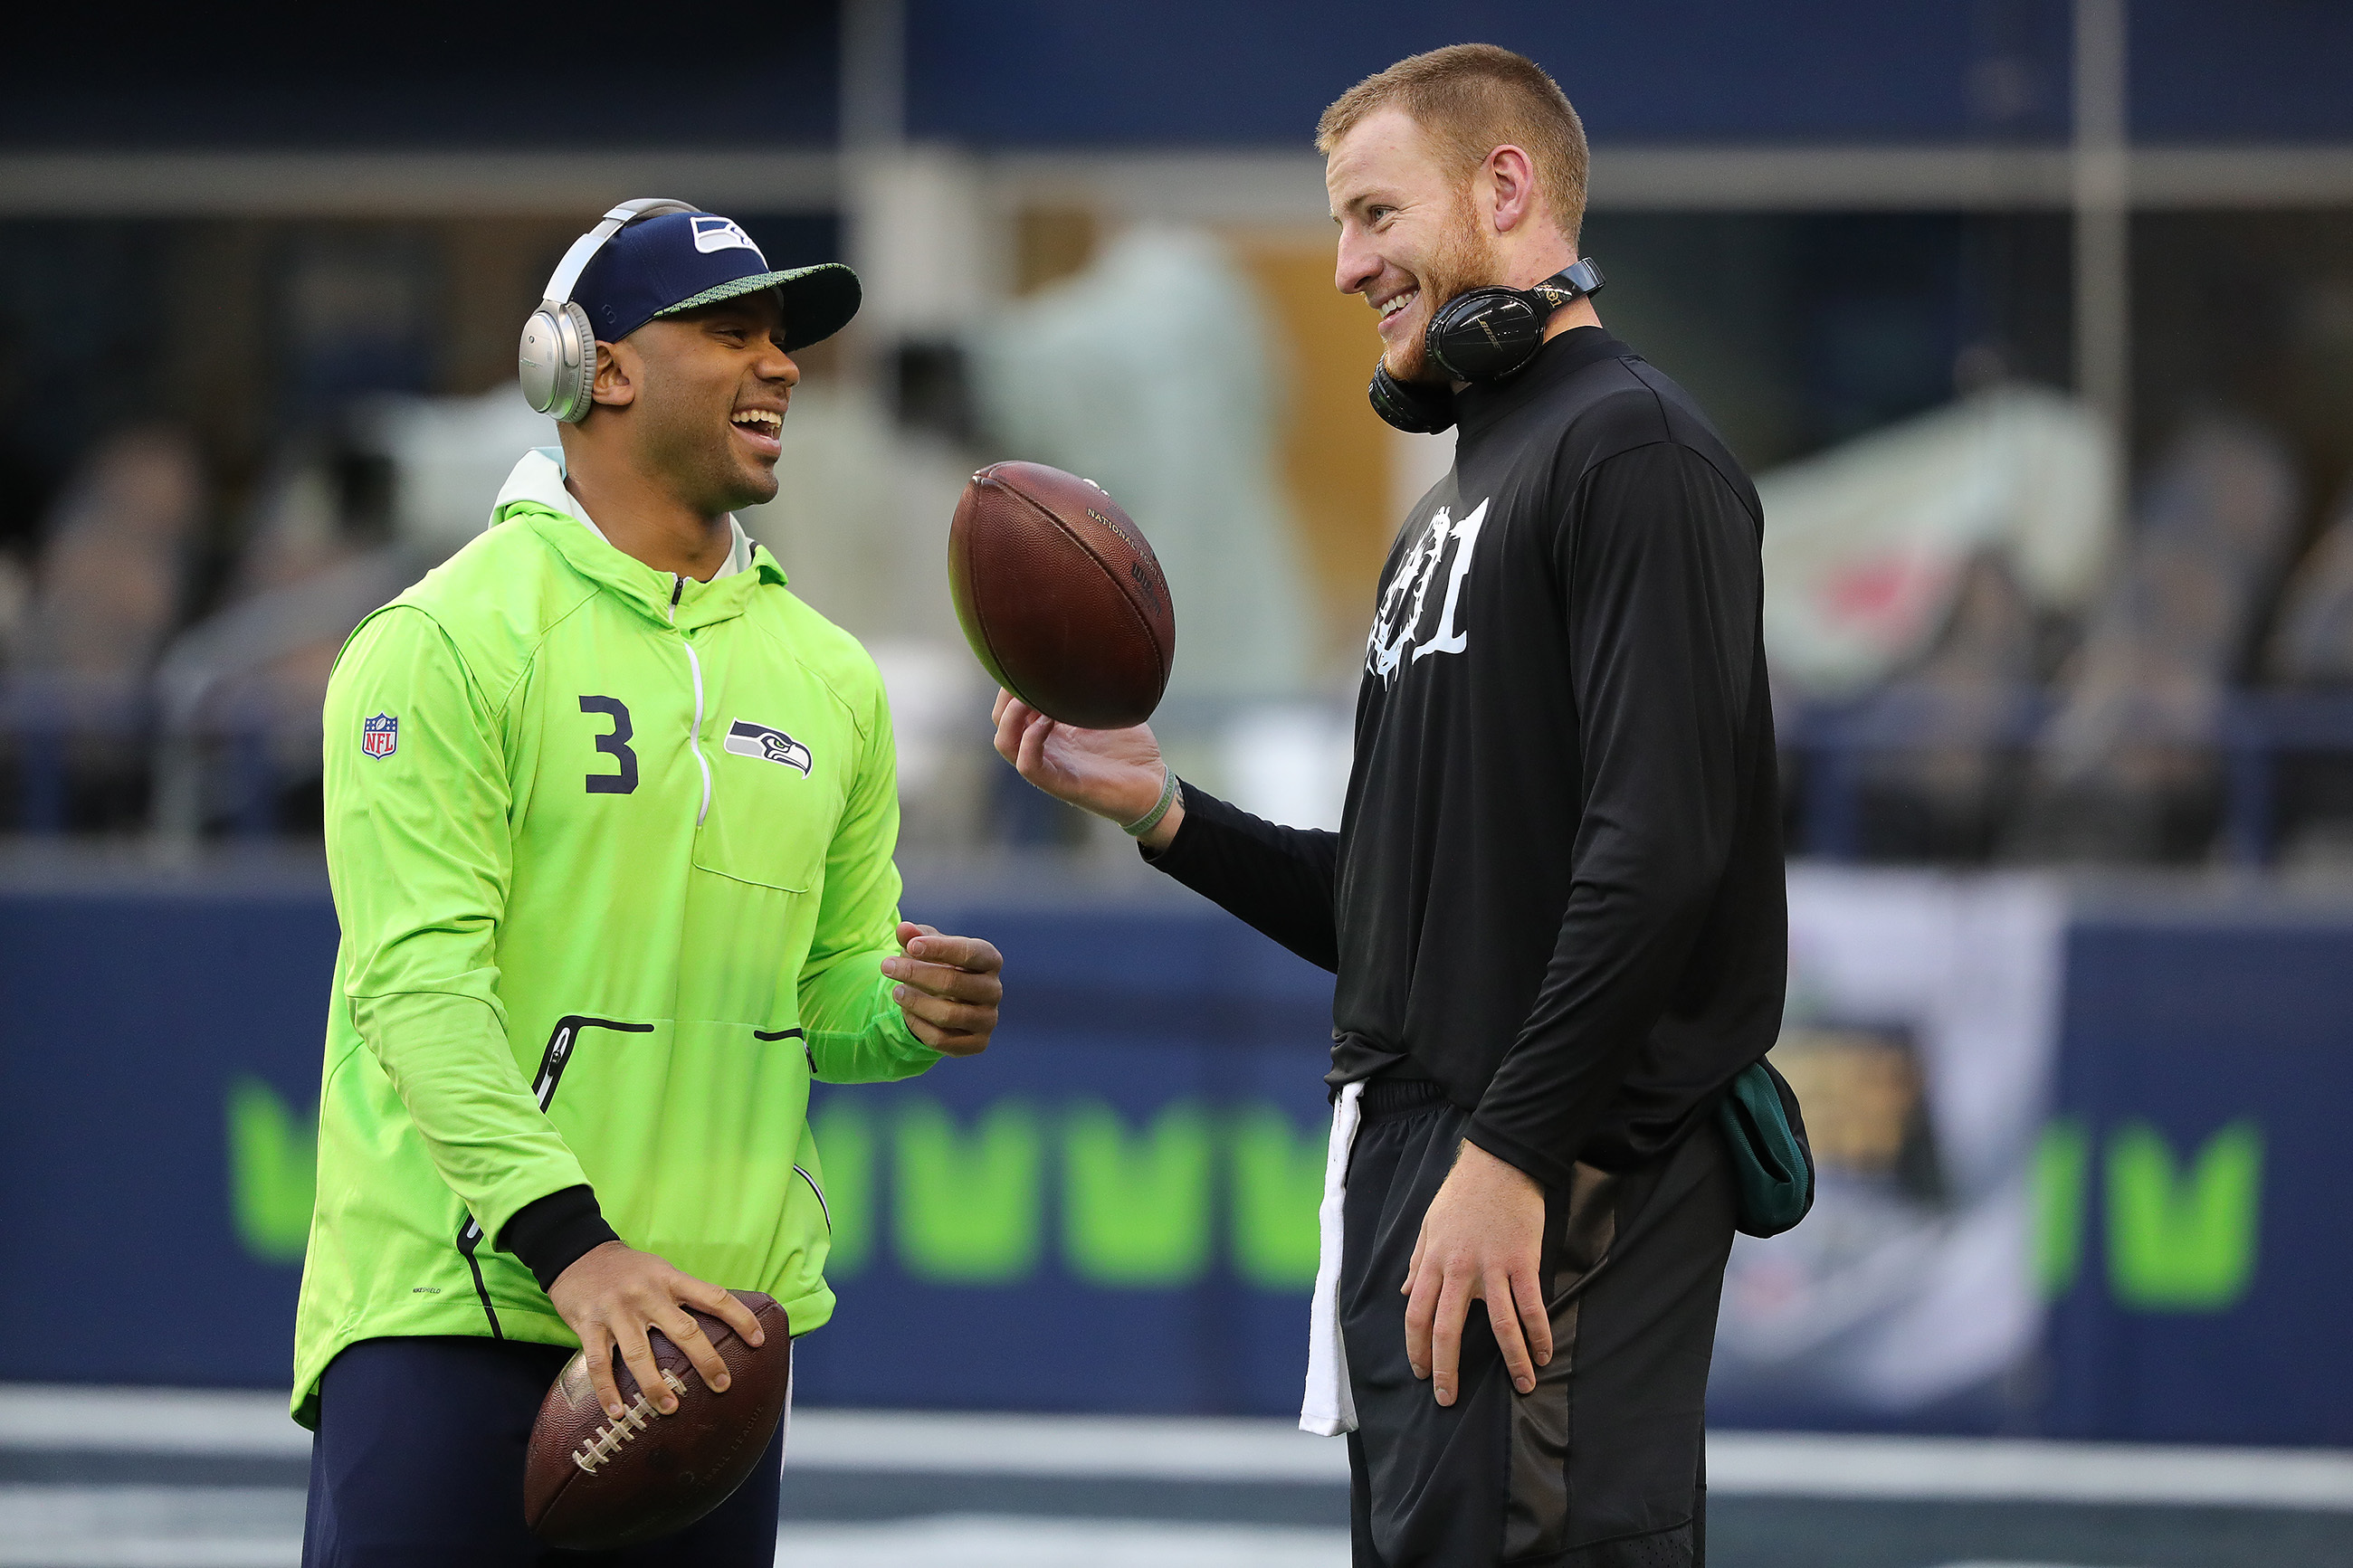 Seahawks' Russell Wilson, left, and Eagles' Carson Wentz, right, talk as they warm up before the Philadelphia Eagles play the Seattle Seahawks in Seattle, WA on December 3, 2017. DAVID MAIALETTI / Staff Photographer